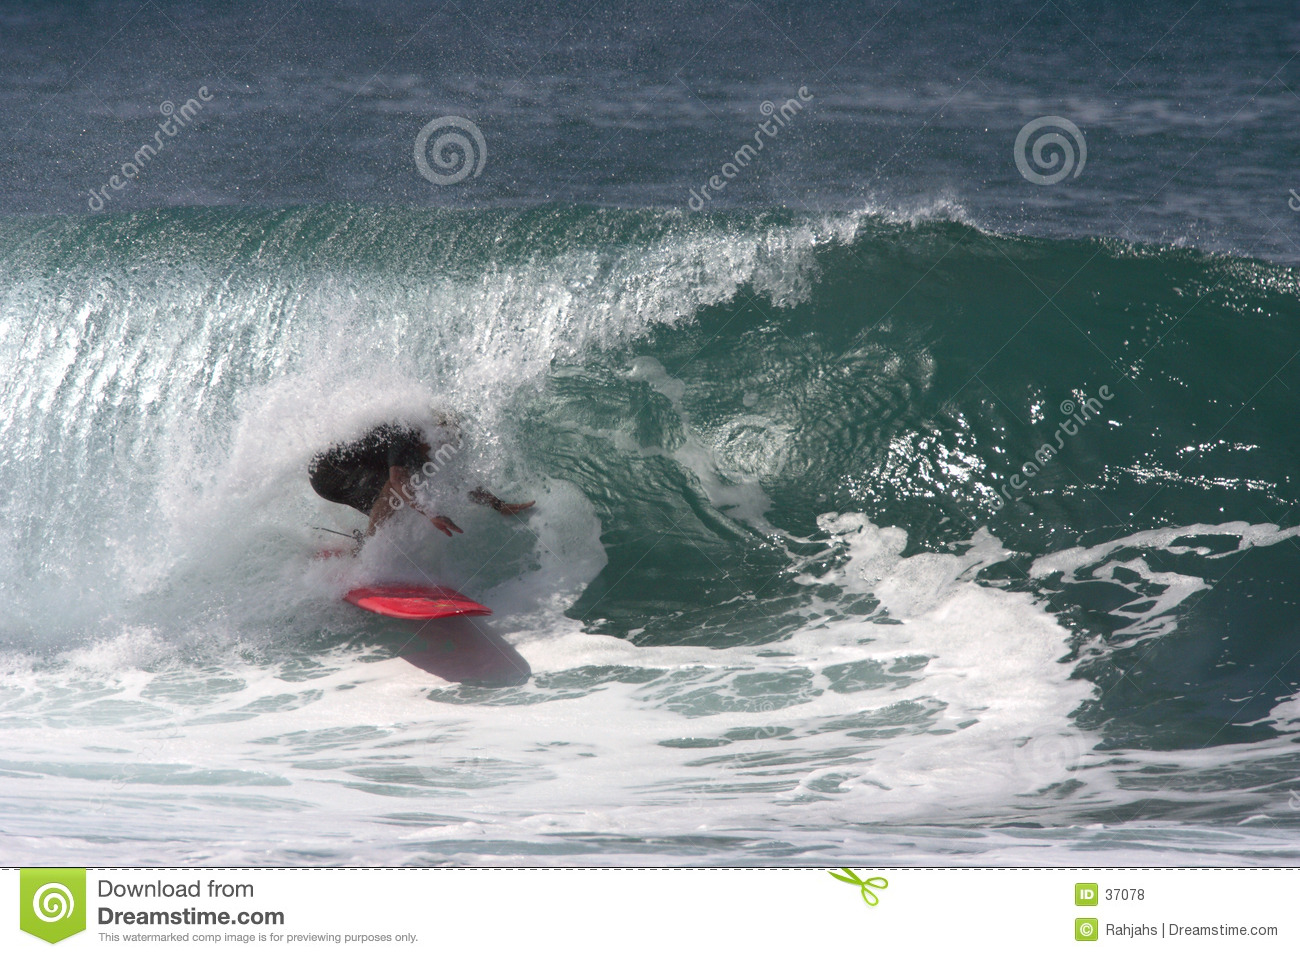 Surfer under the Lip, Tube Rider